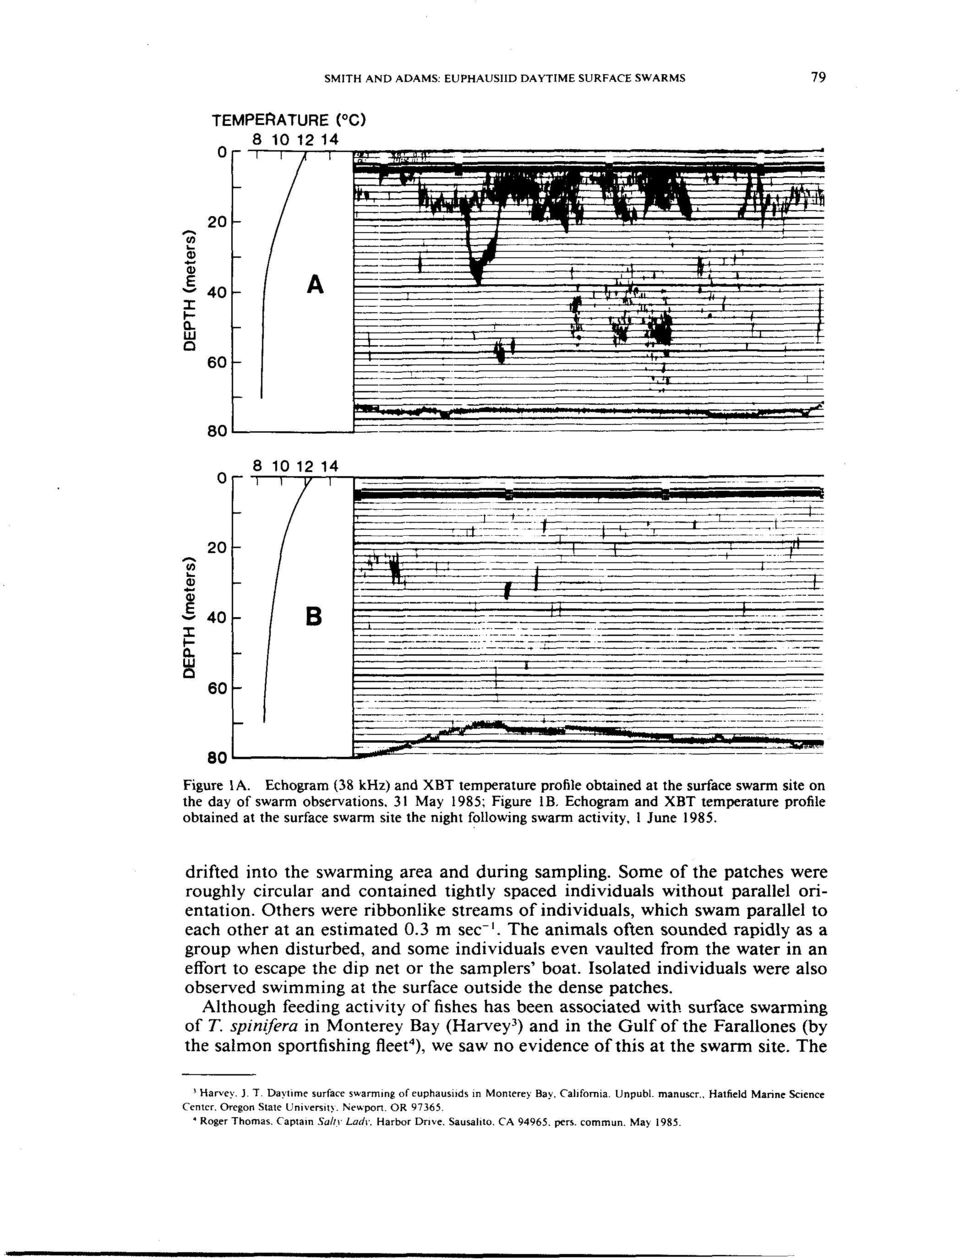 Echogram and XBT temperature profile obtained at the surface swarm site the night following swarm activity, 1 June 1985. drifted into the swarming area and during sampling.